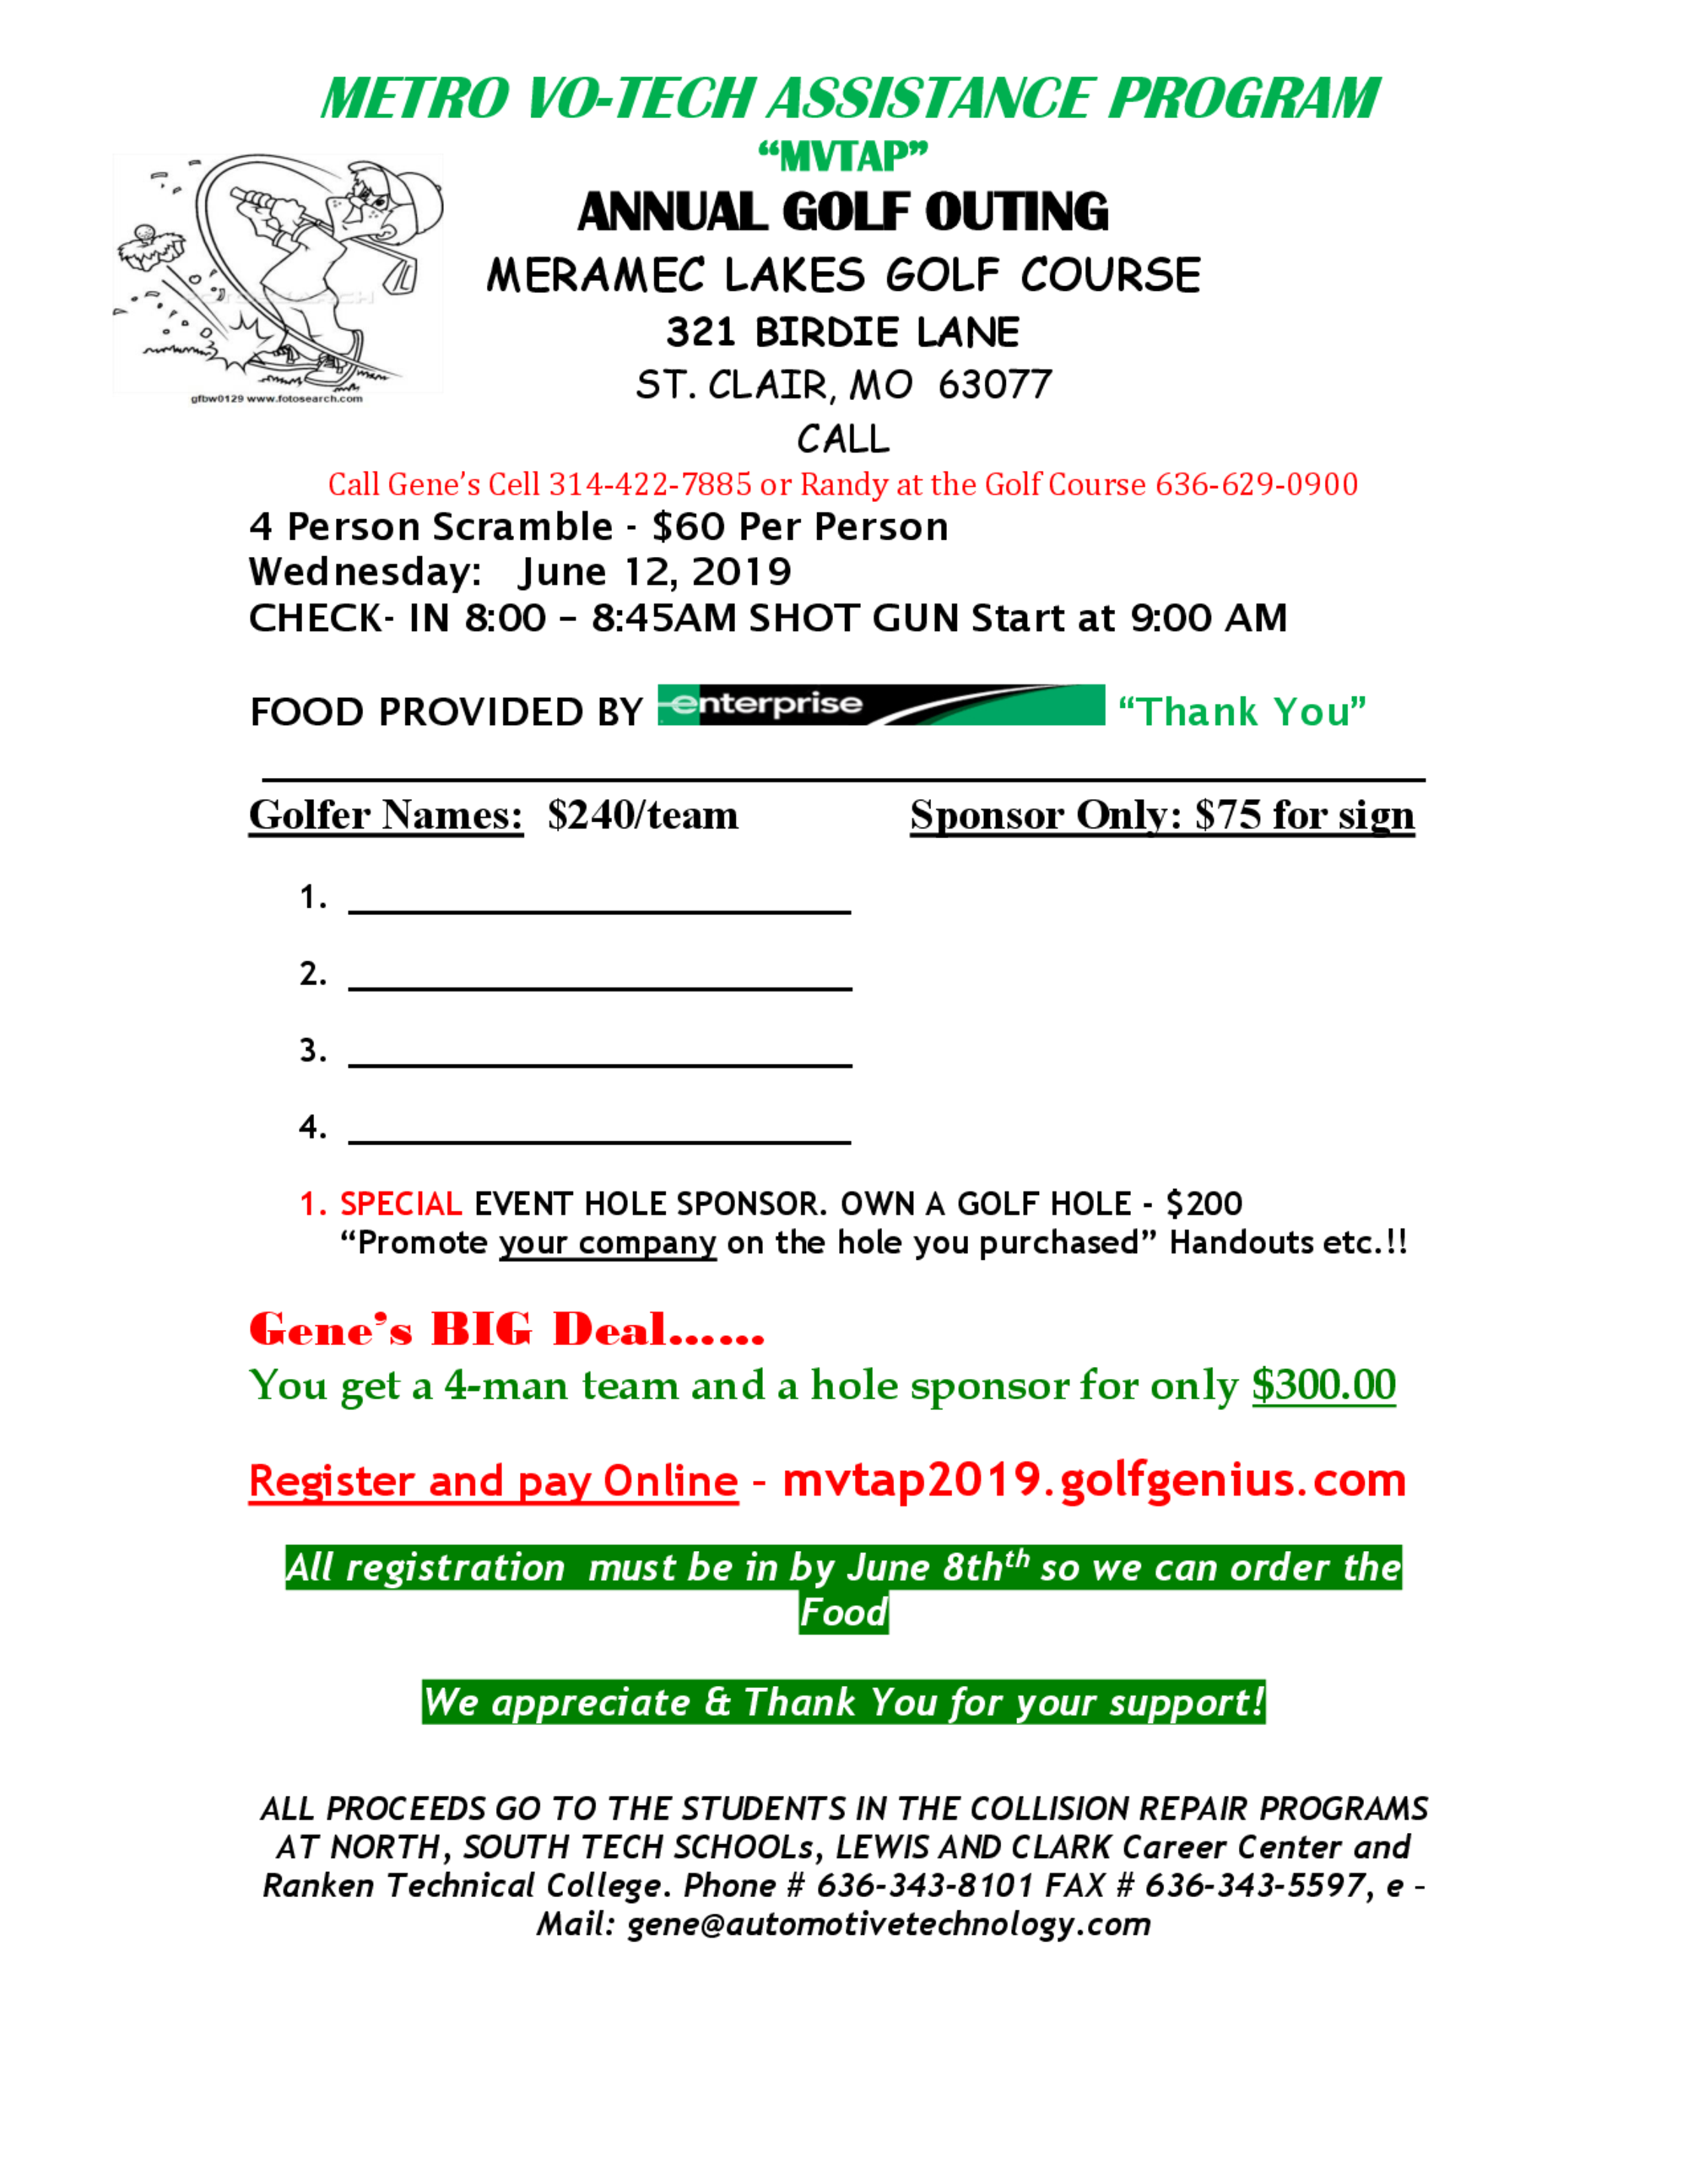 Votech golf outing 2019 flyer 1